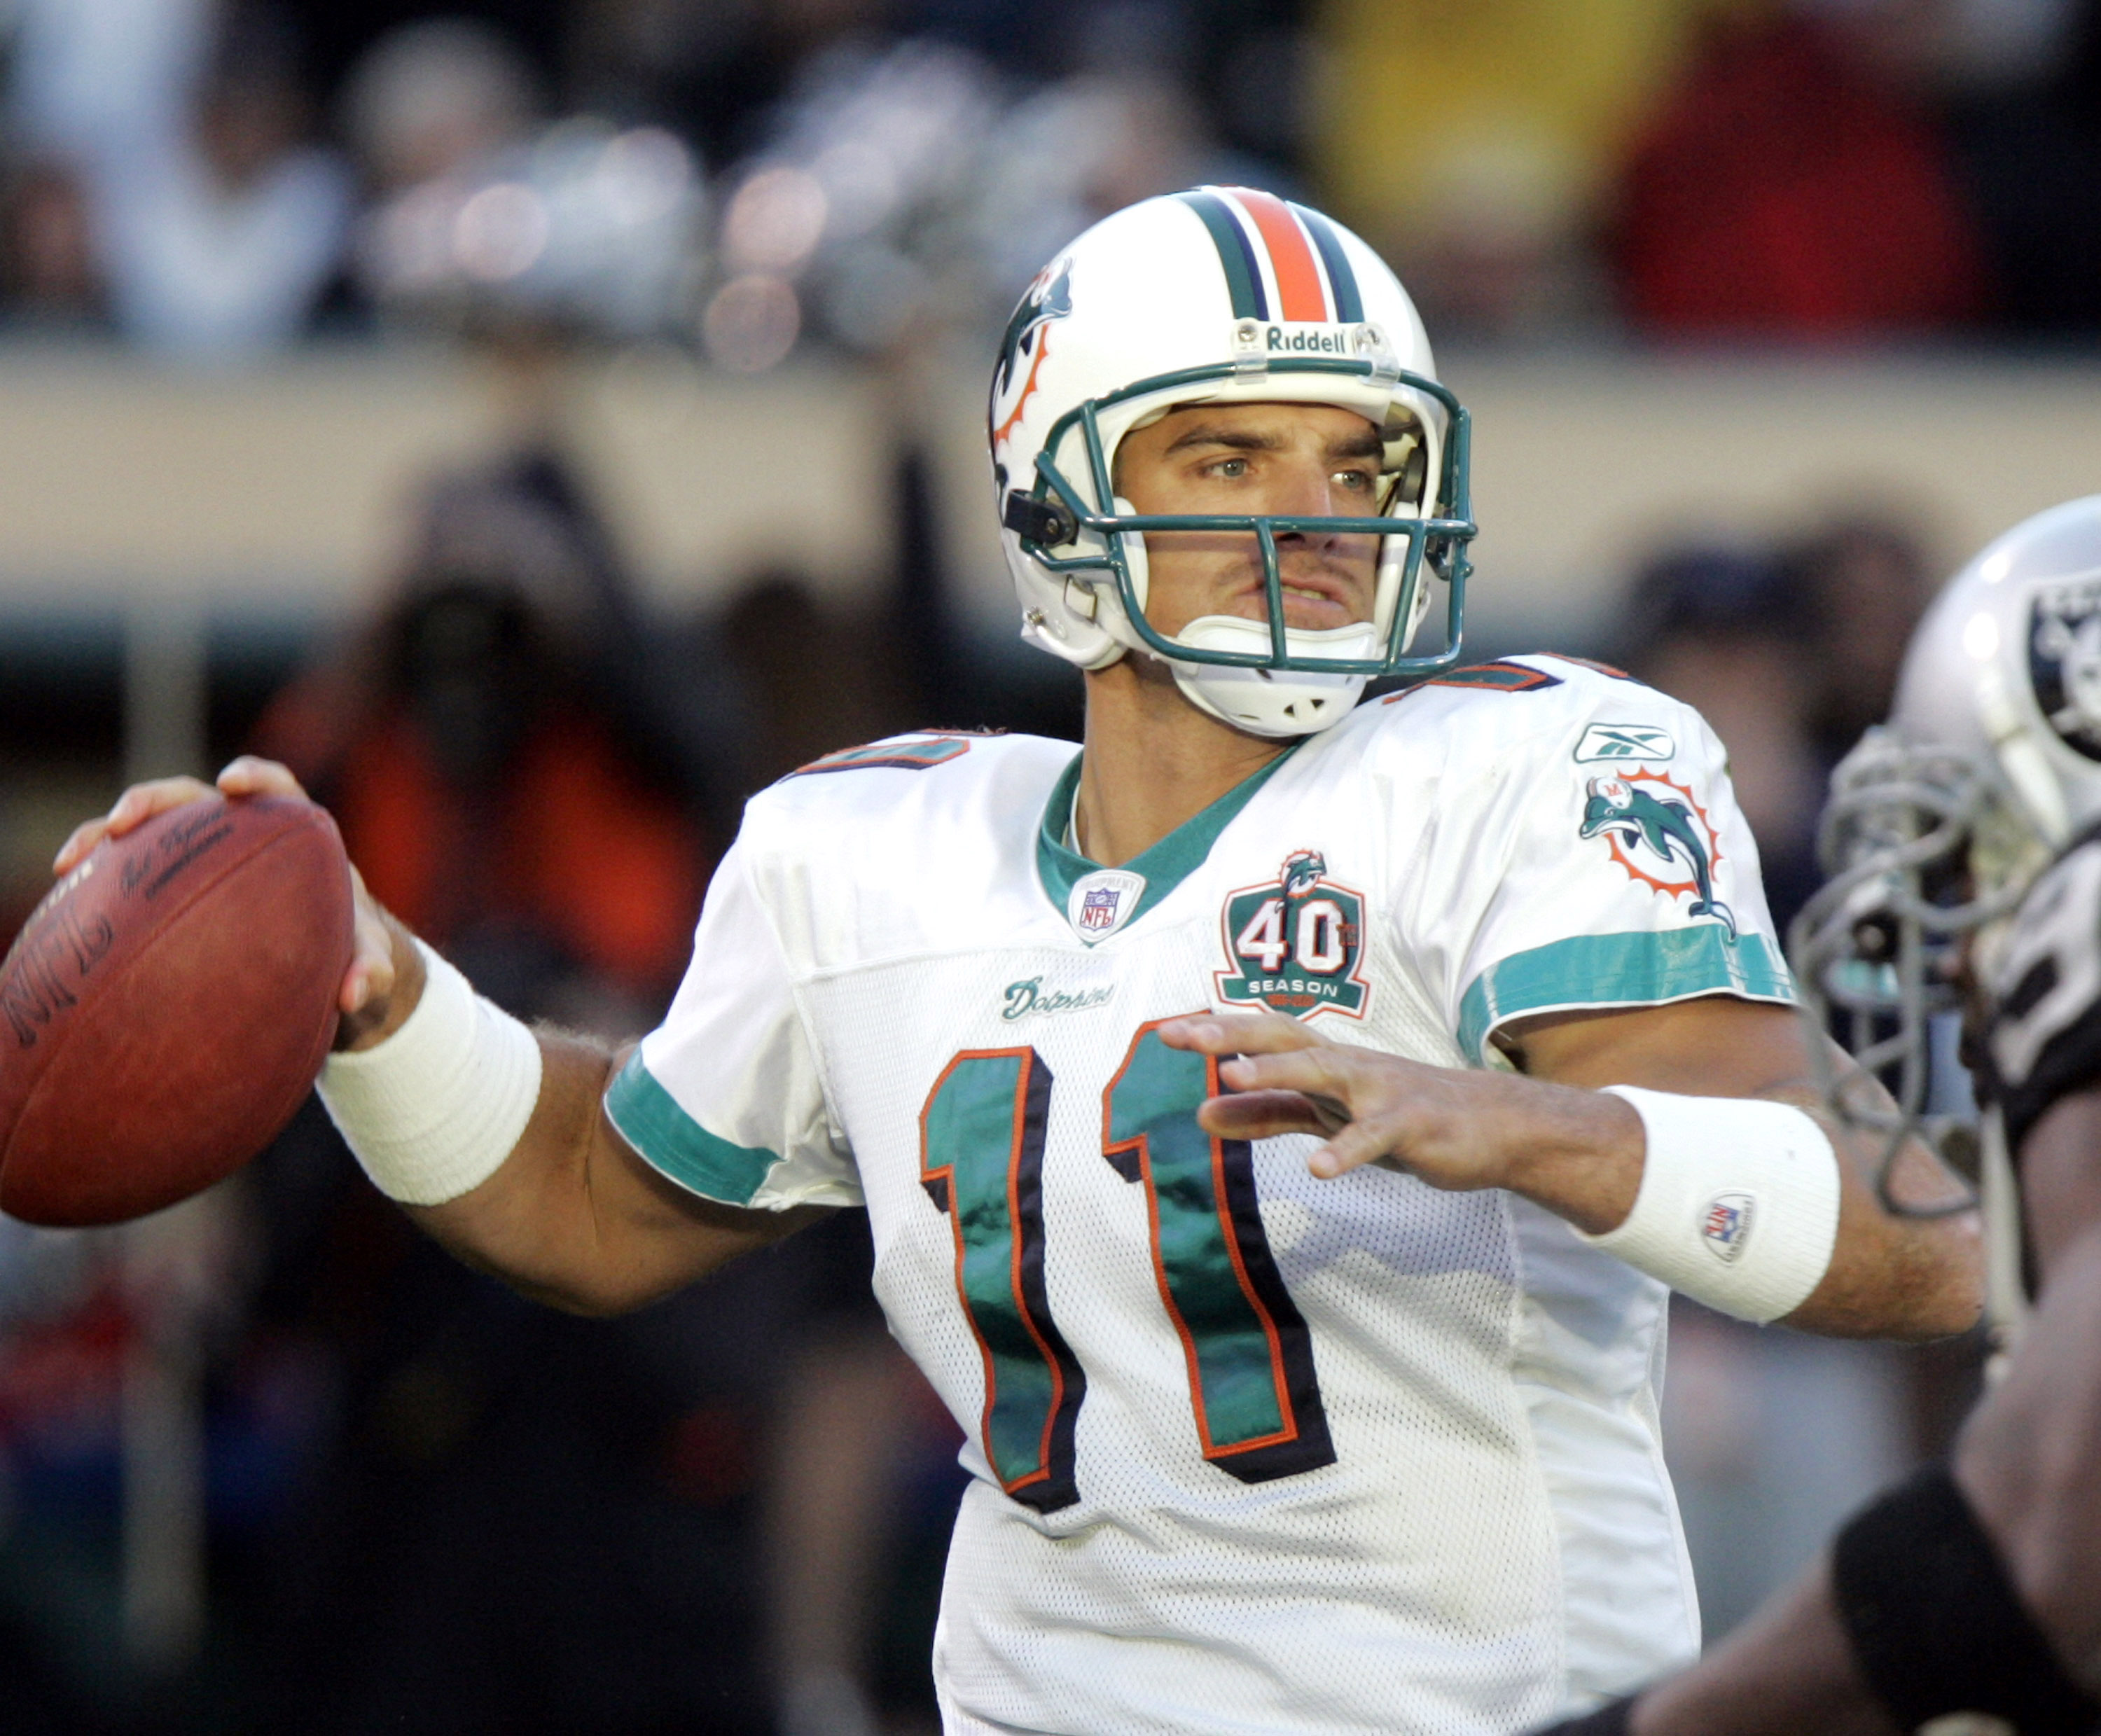 Gus Frerotte scanning the field during a Dolphins game